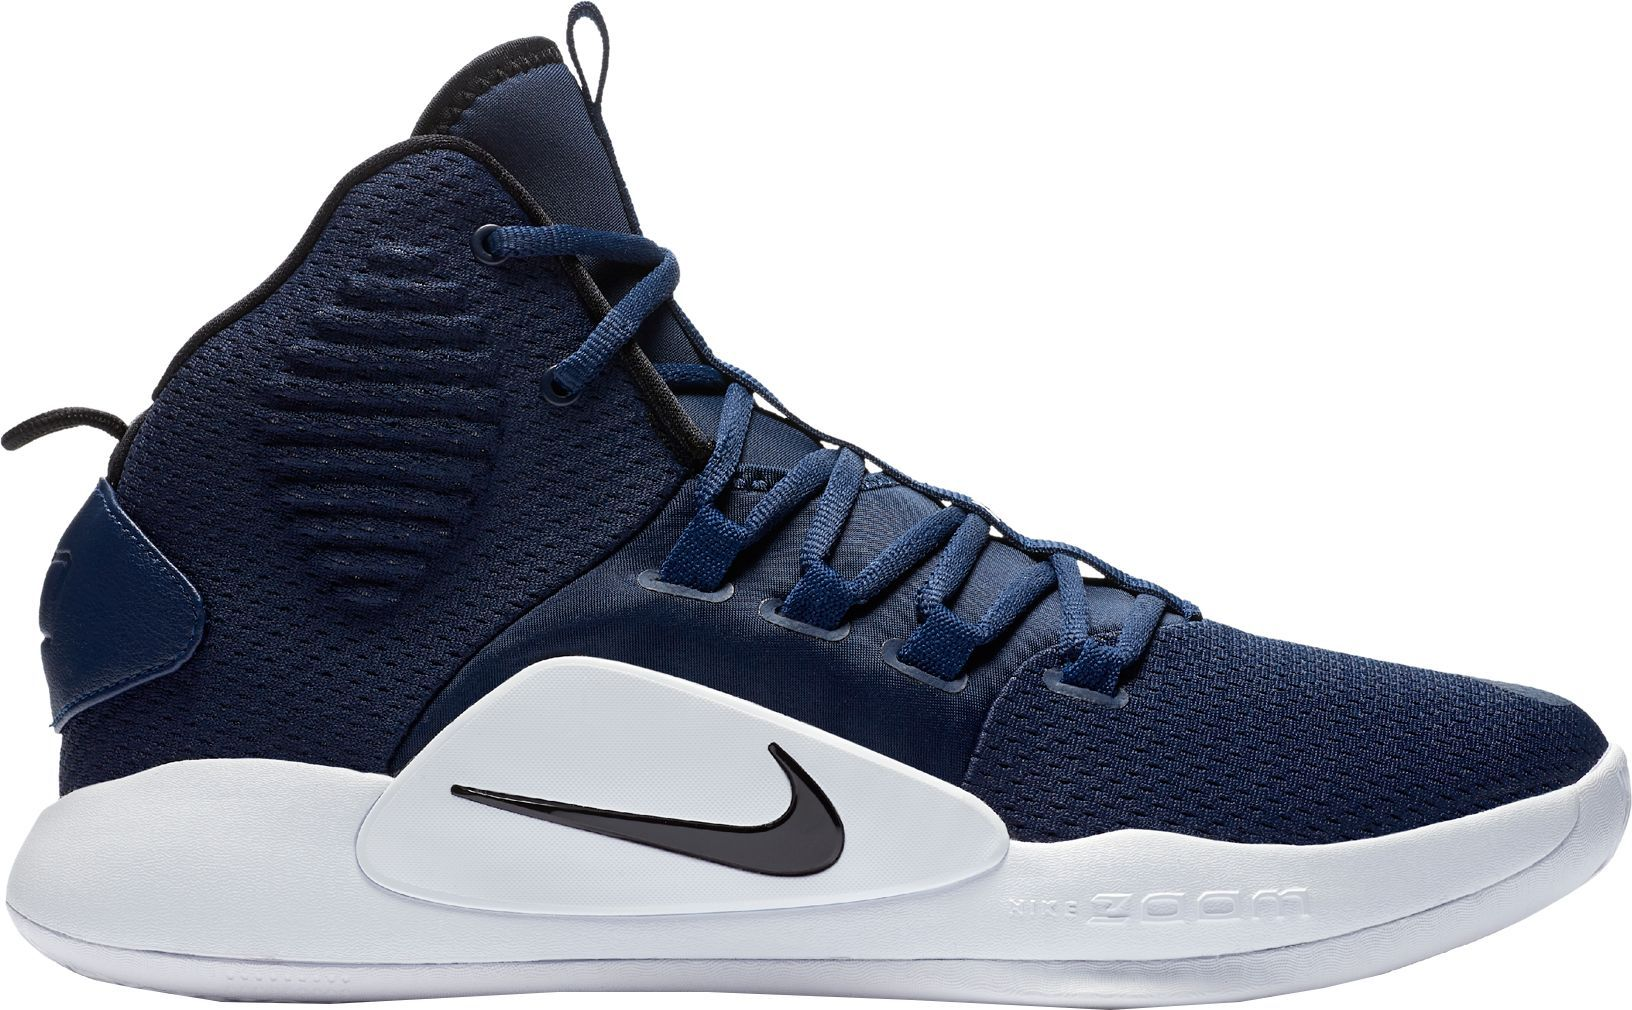 half off b55f9 4c919 Nike Mens Hyperdunk X Mid TB Basketball Shoes, Blue